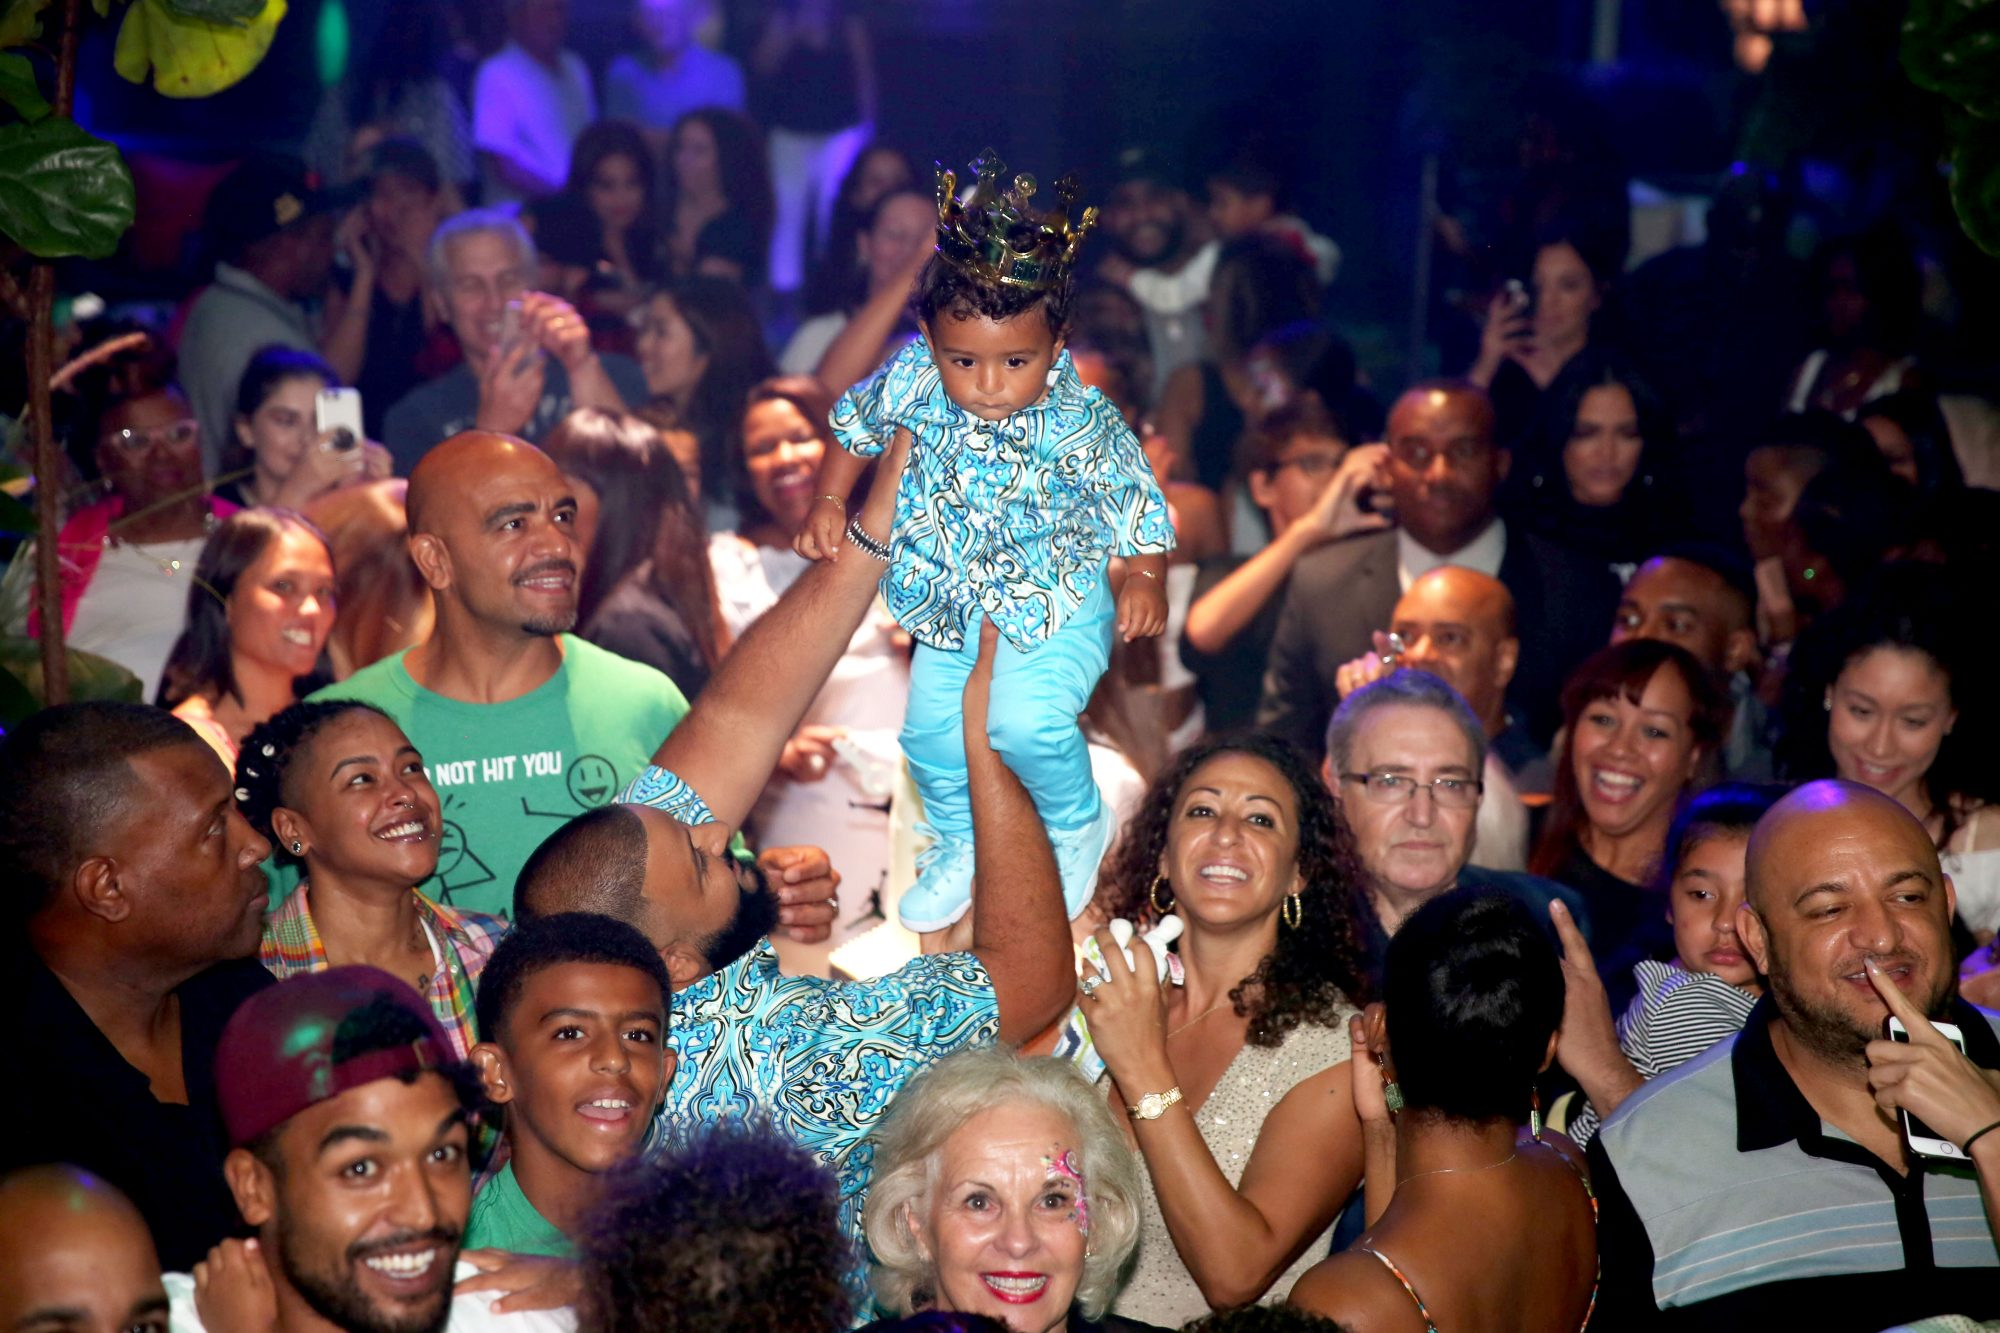 ASAHD TUCK'S BIG LION KING-THEMED NIGHT OUT